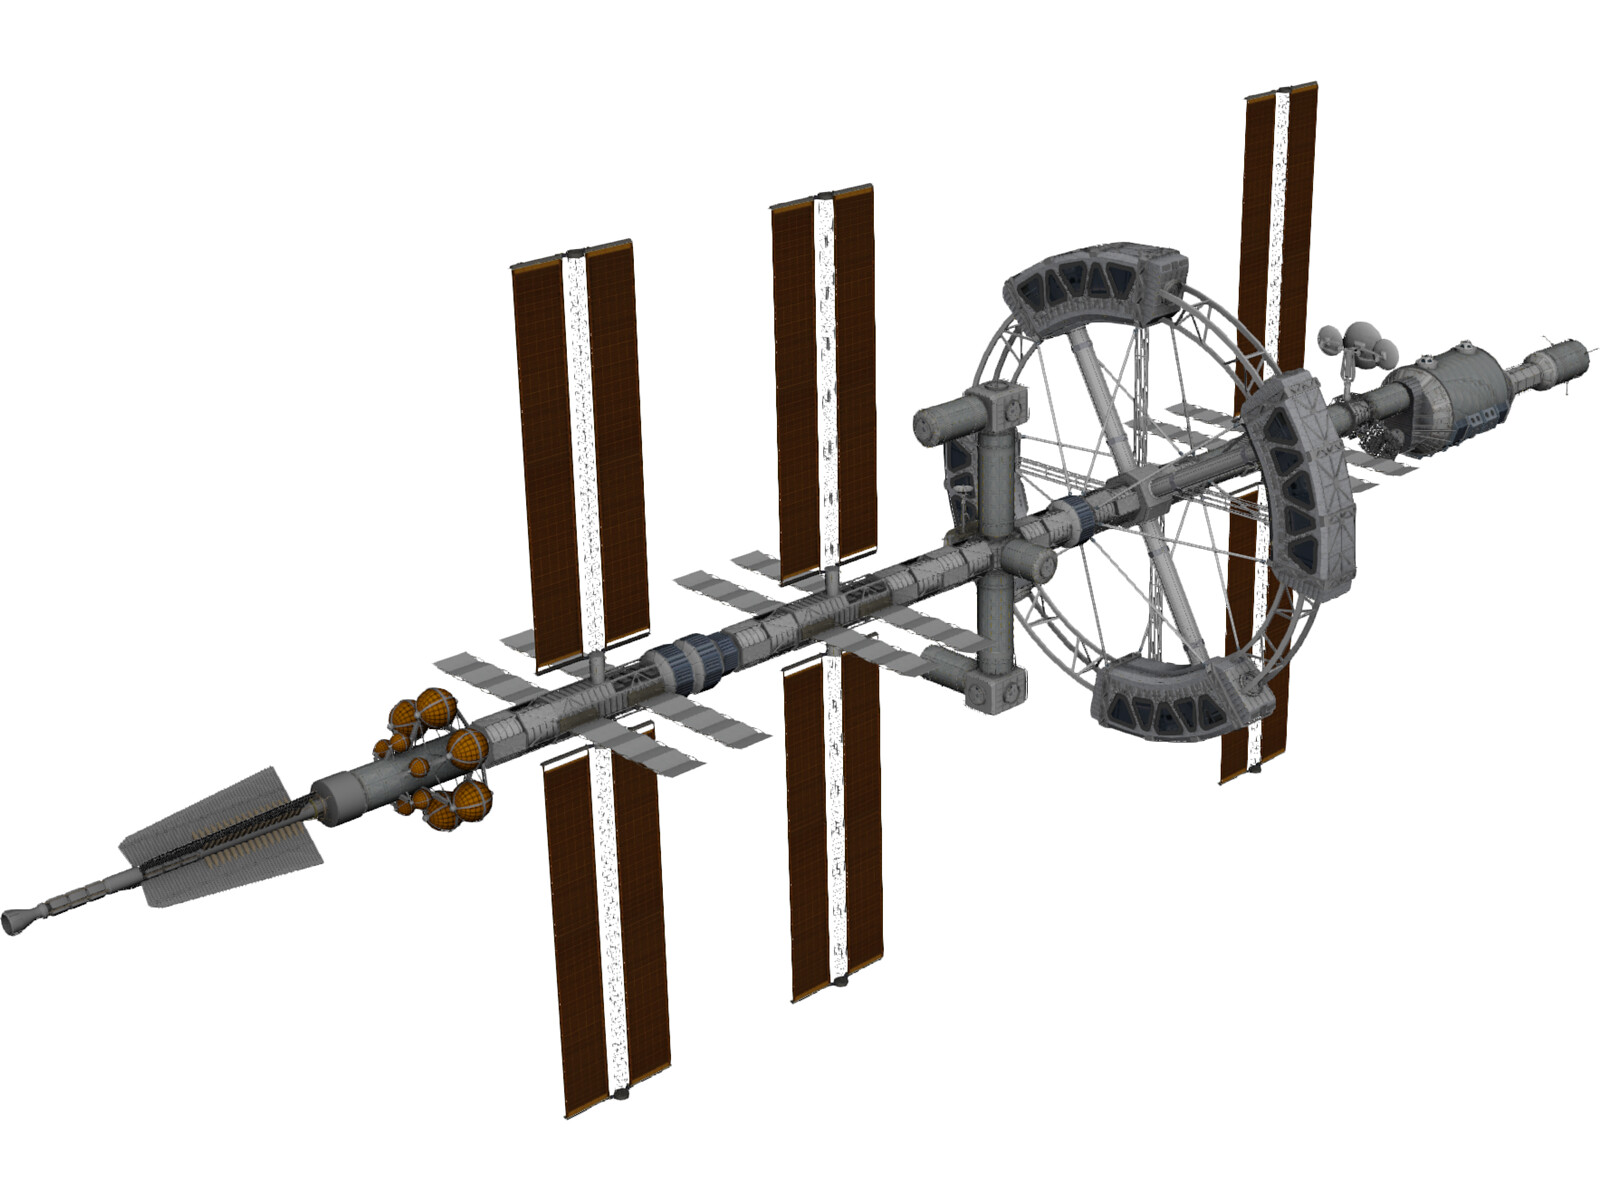 Hermes Spacecraft 3D Model